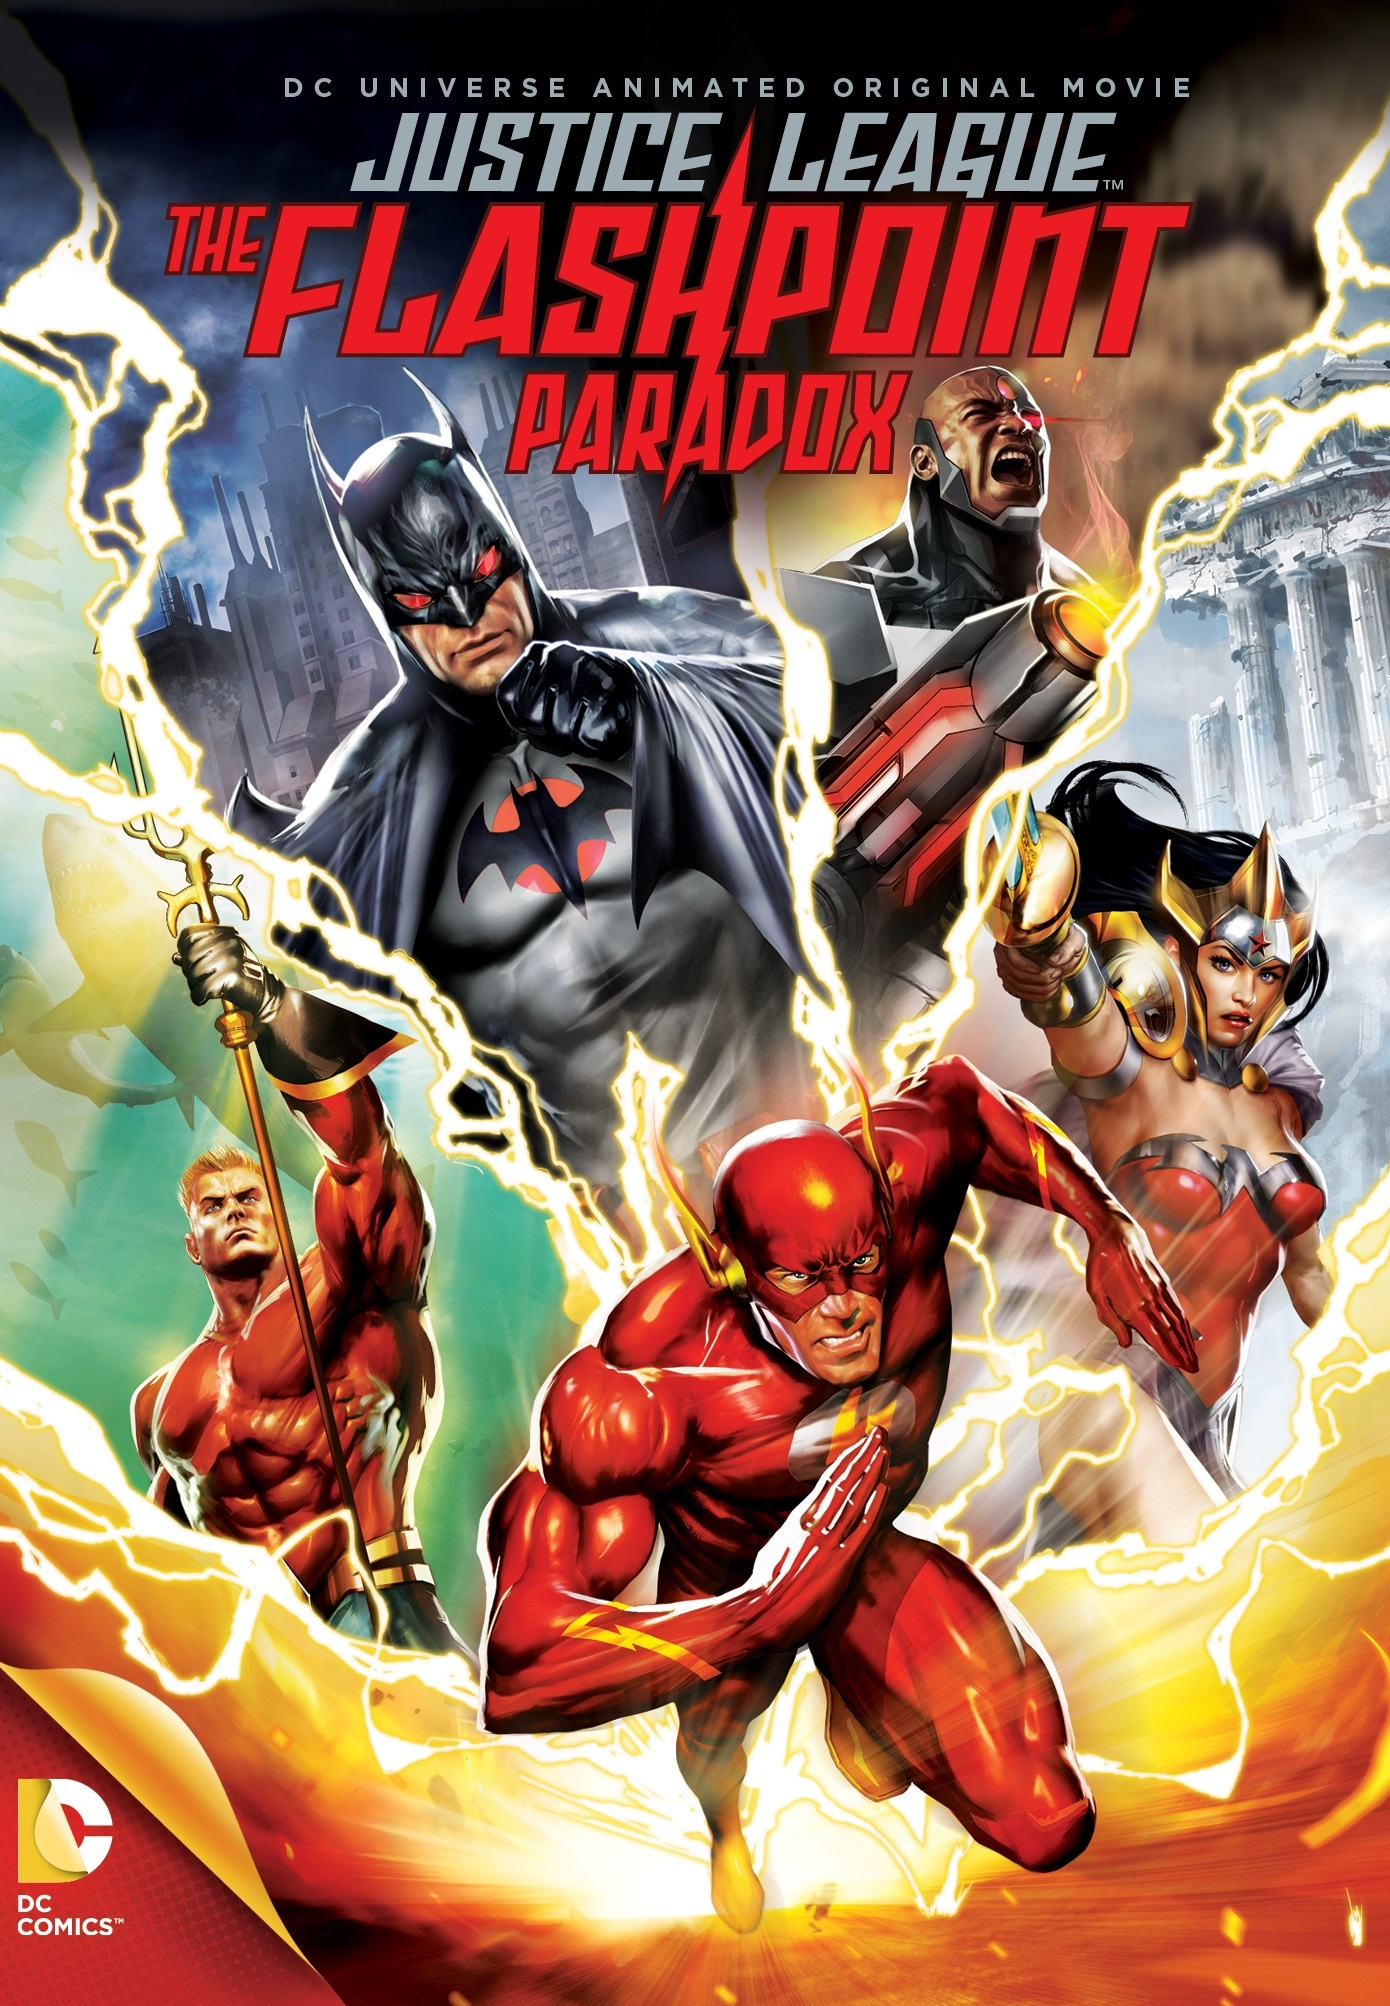 The Flashpoint Paradox Poster